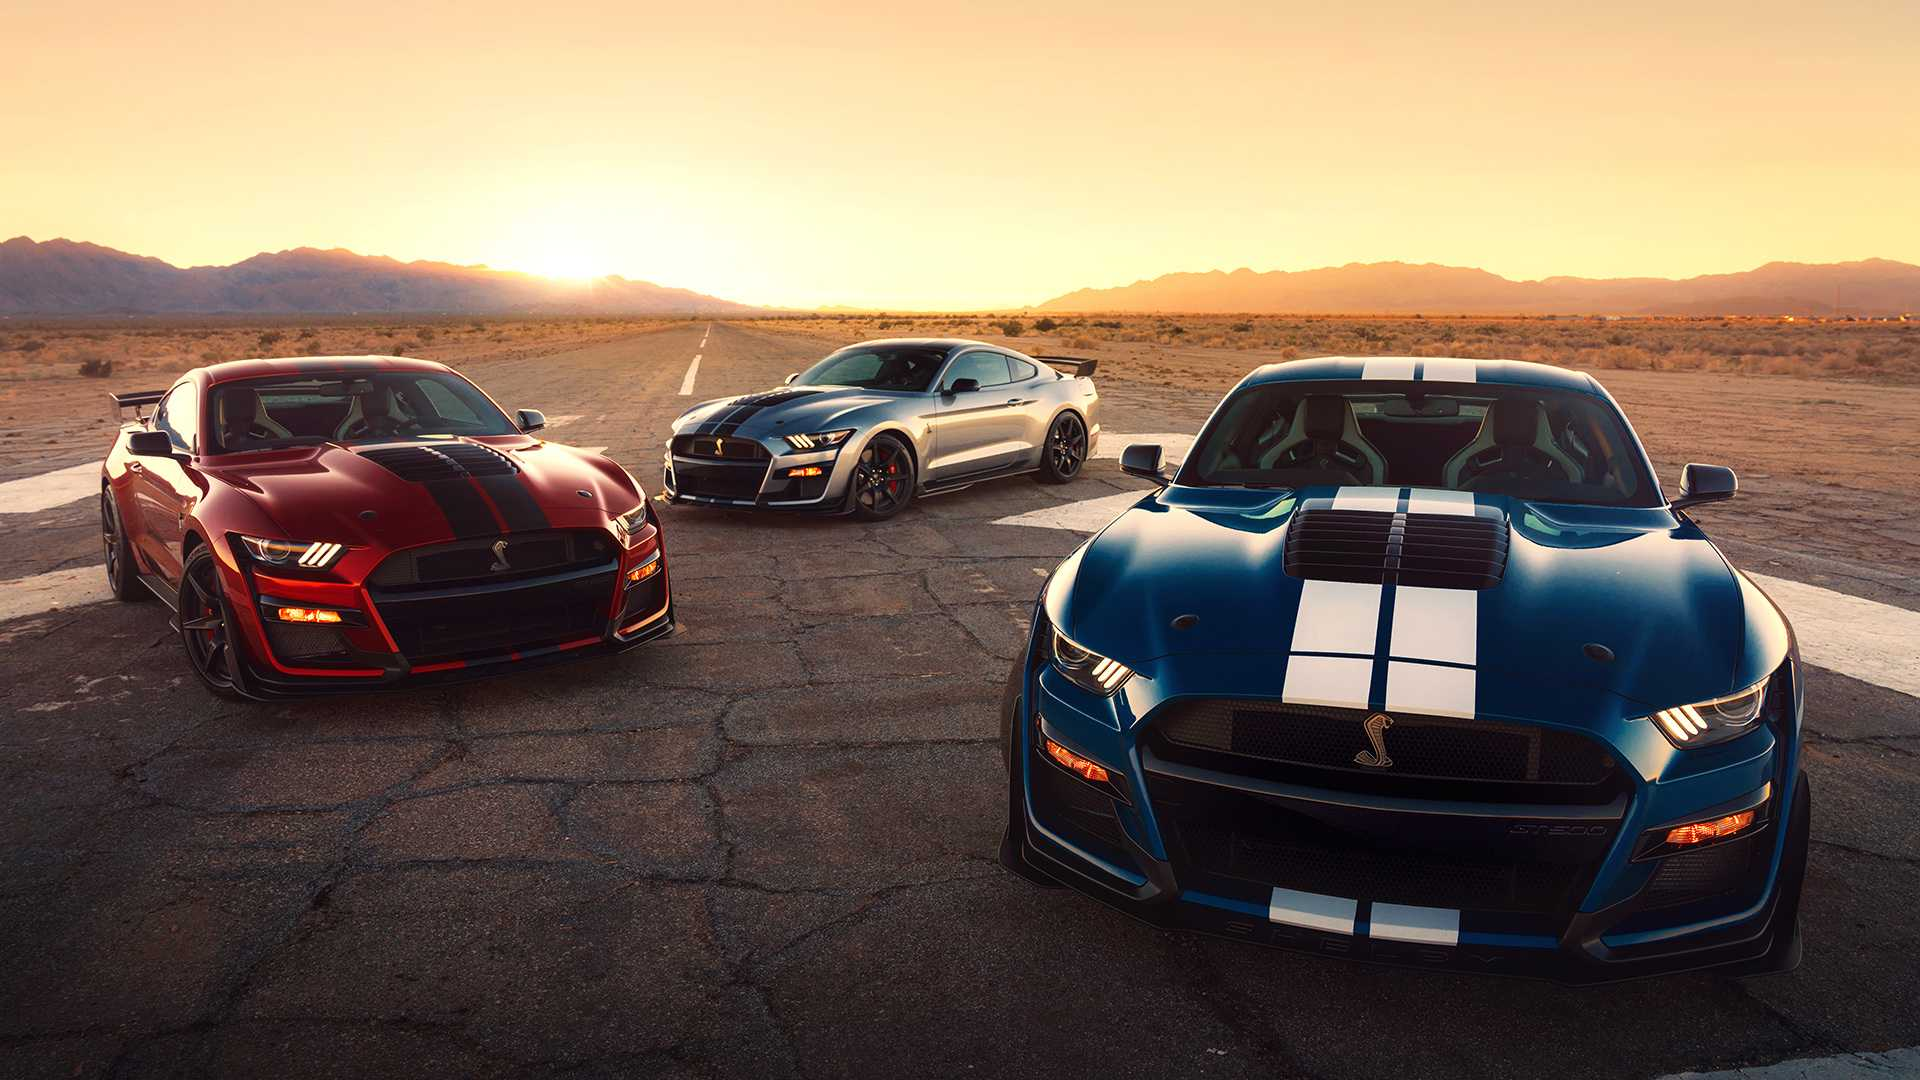 60 A Price Of 2020 Ford Mustang Shelby Gt500 Wallpaper